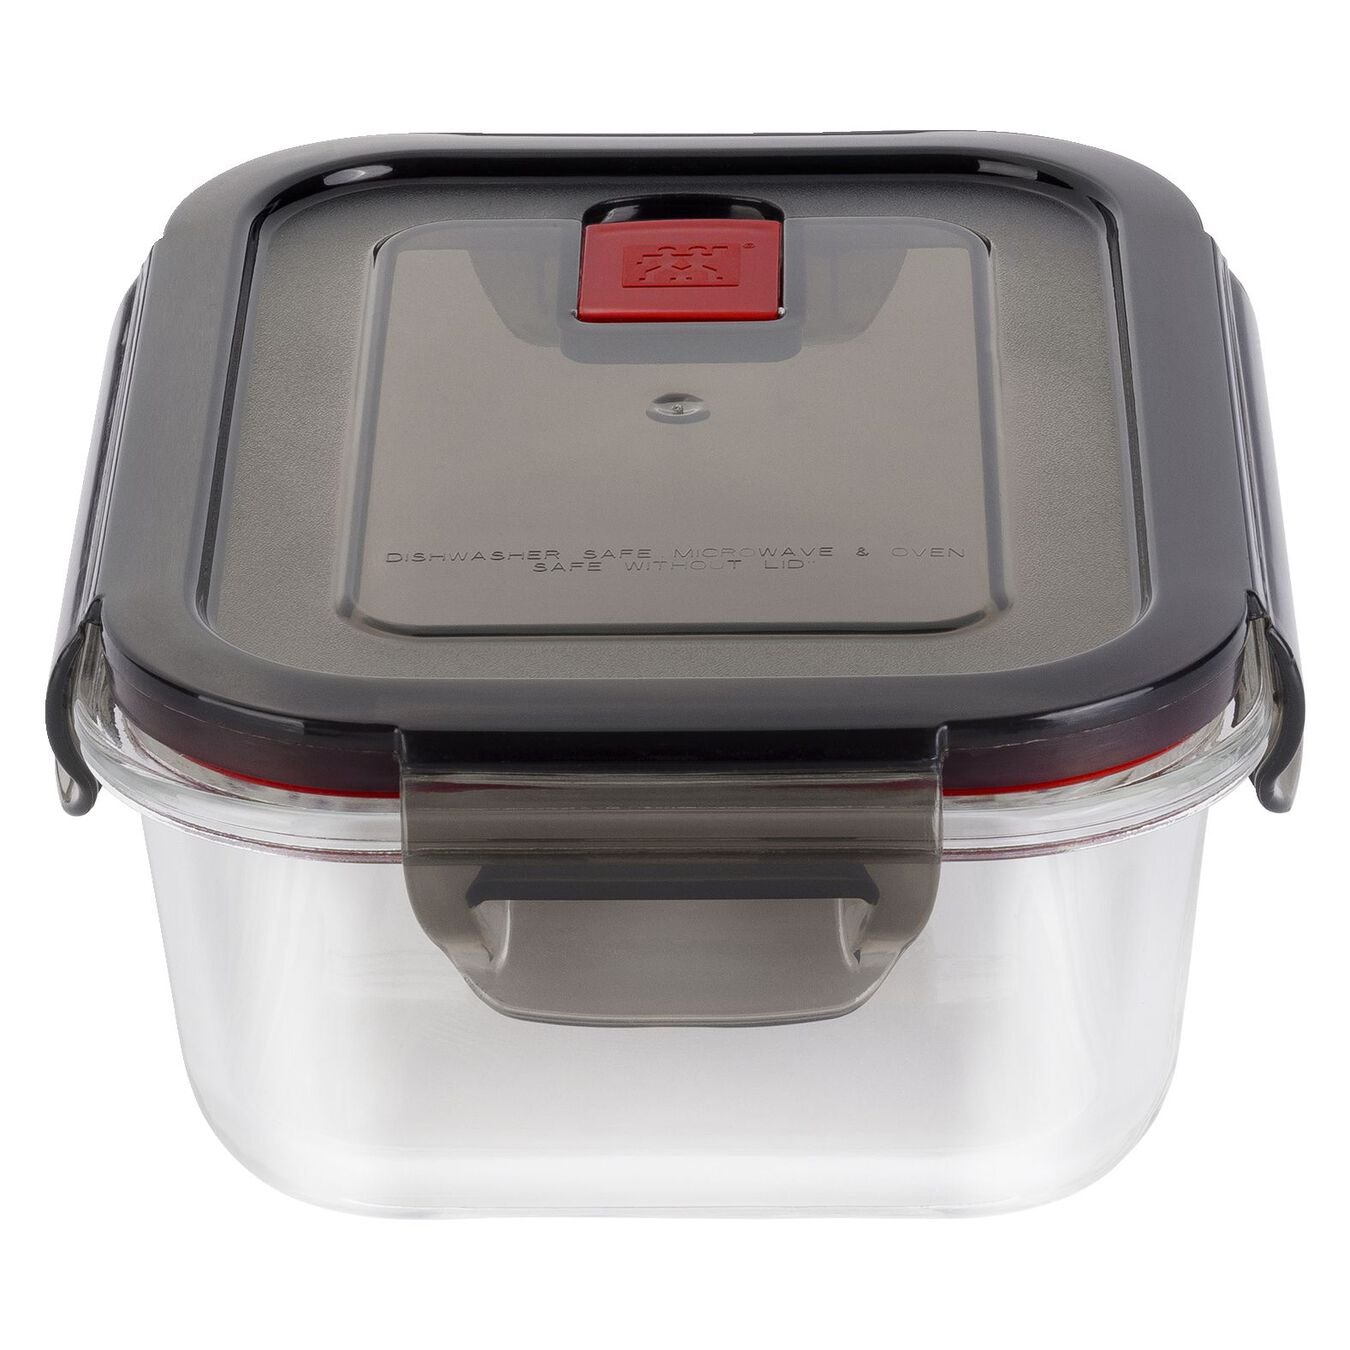 0.6-Qt Rectangular Storage Container,,large 1